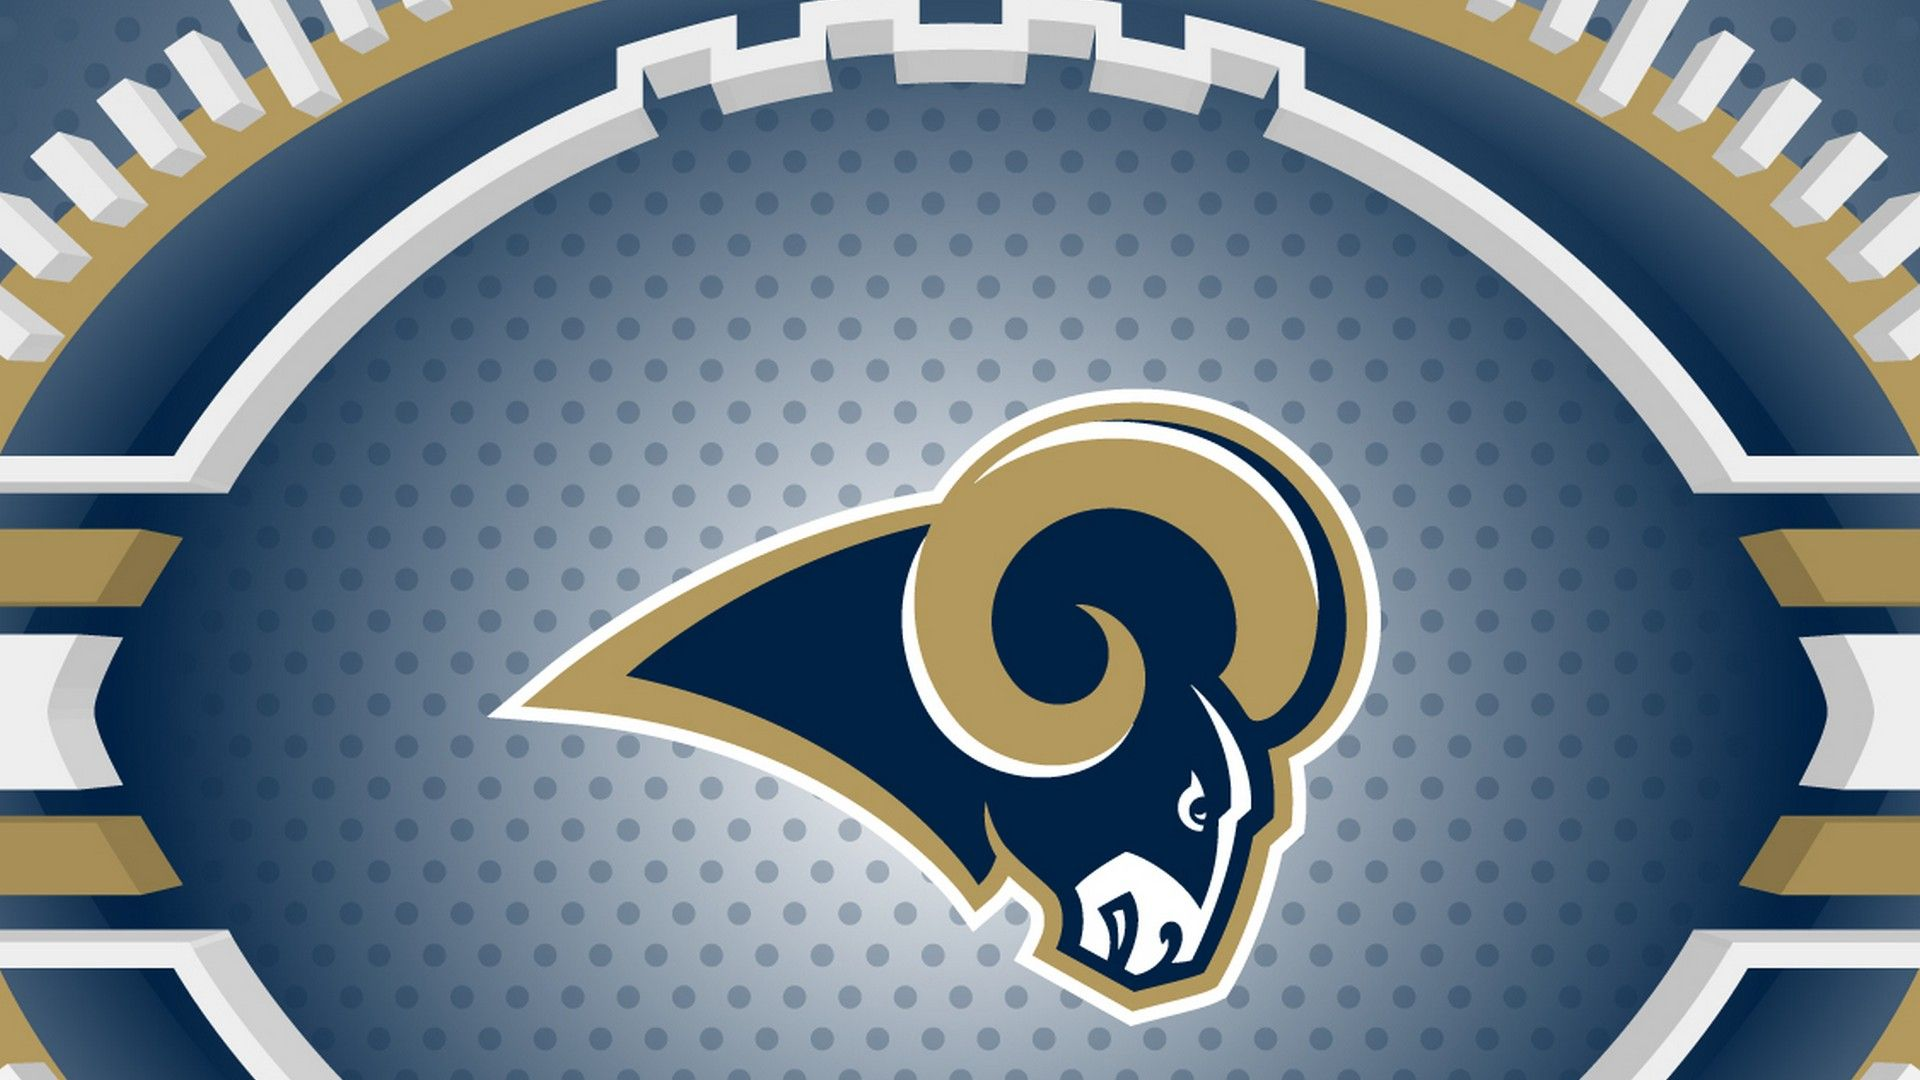 Wallpaper Desktop Los Angeles Rams Hd 2021 Nfl Football Wallpapers Nfl Football Wallpaper Desktop Wallpaper Football Wallpaper